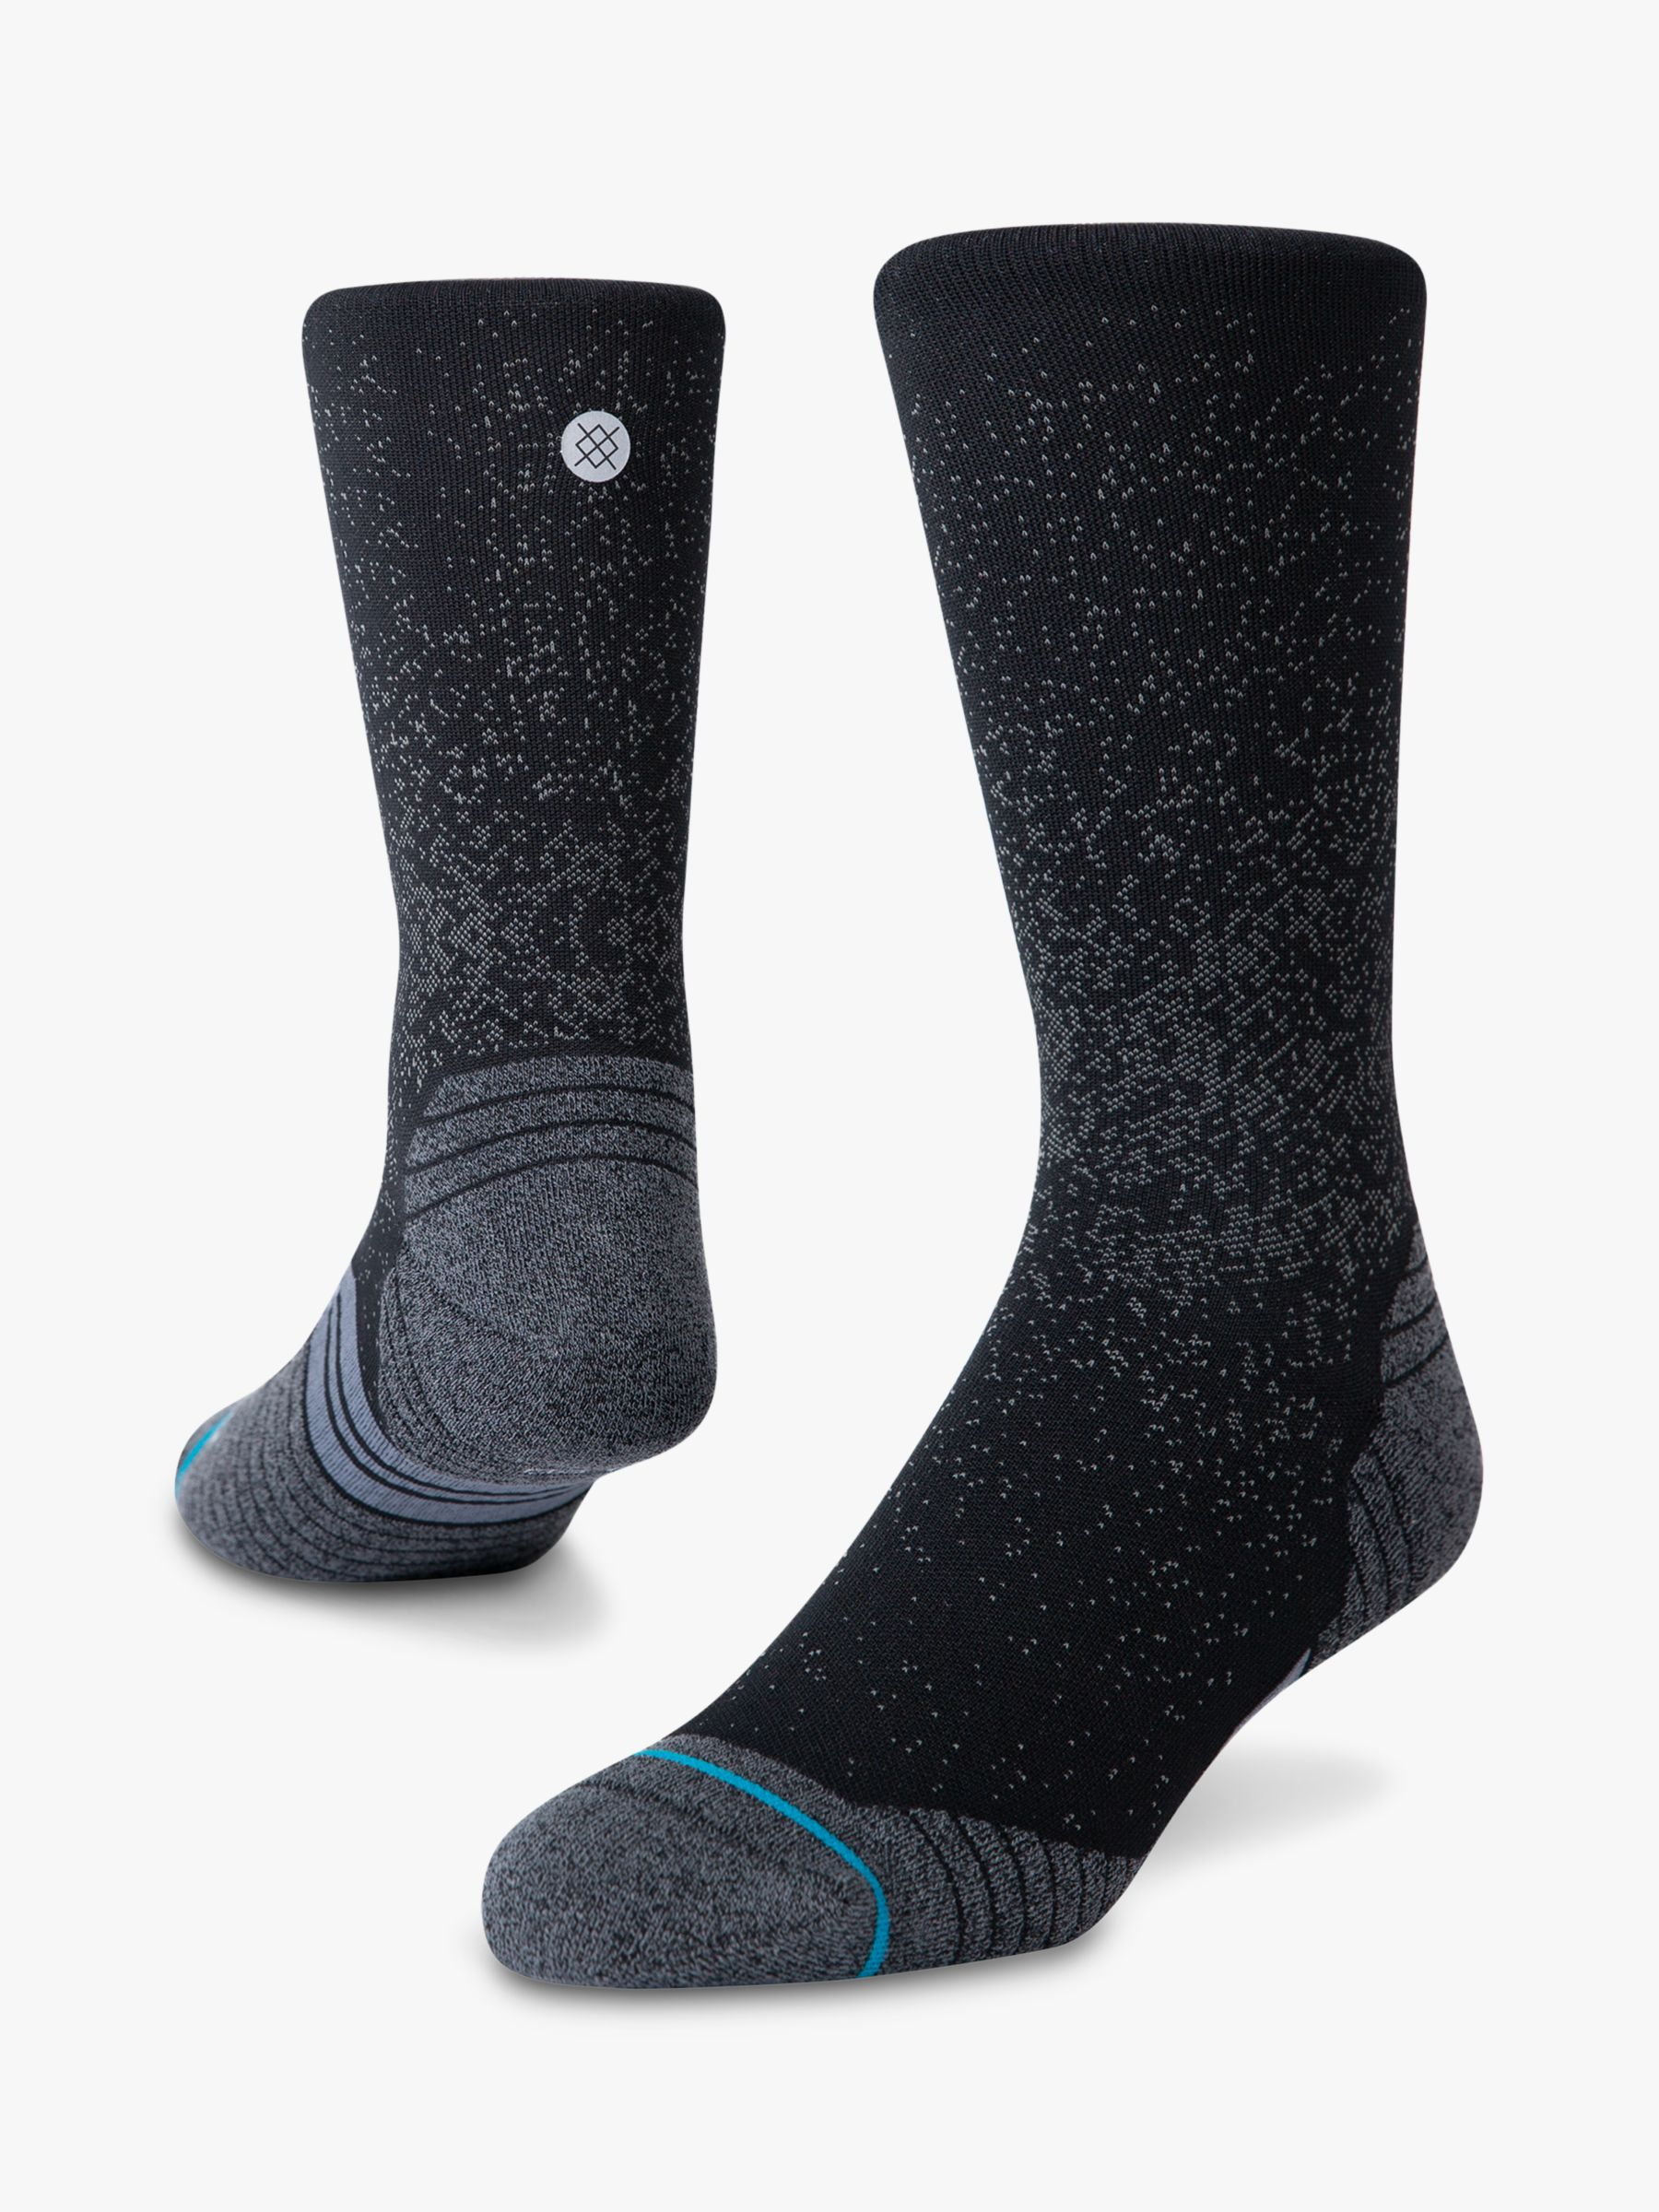 Stance Stance Run Crew Running Socks, Black